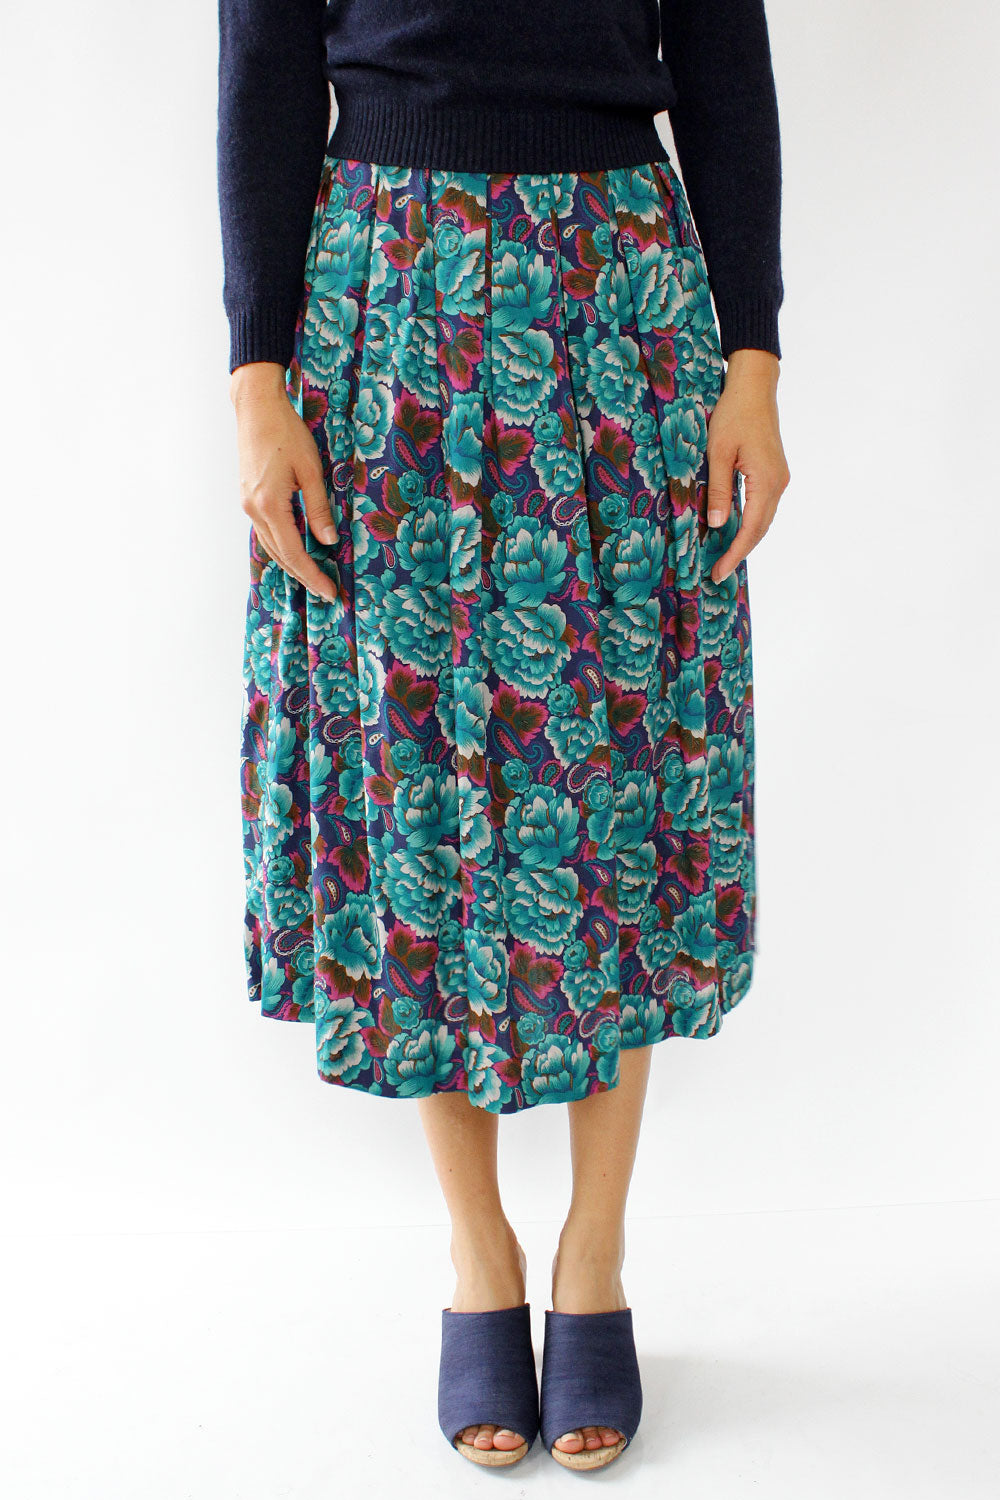 Oxford Moody Floral Midi Skirt M